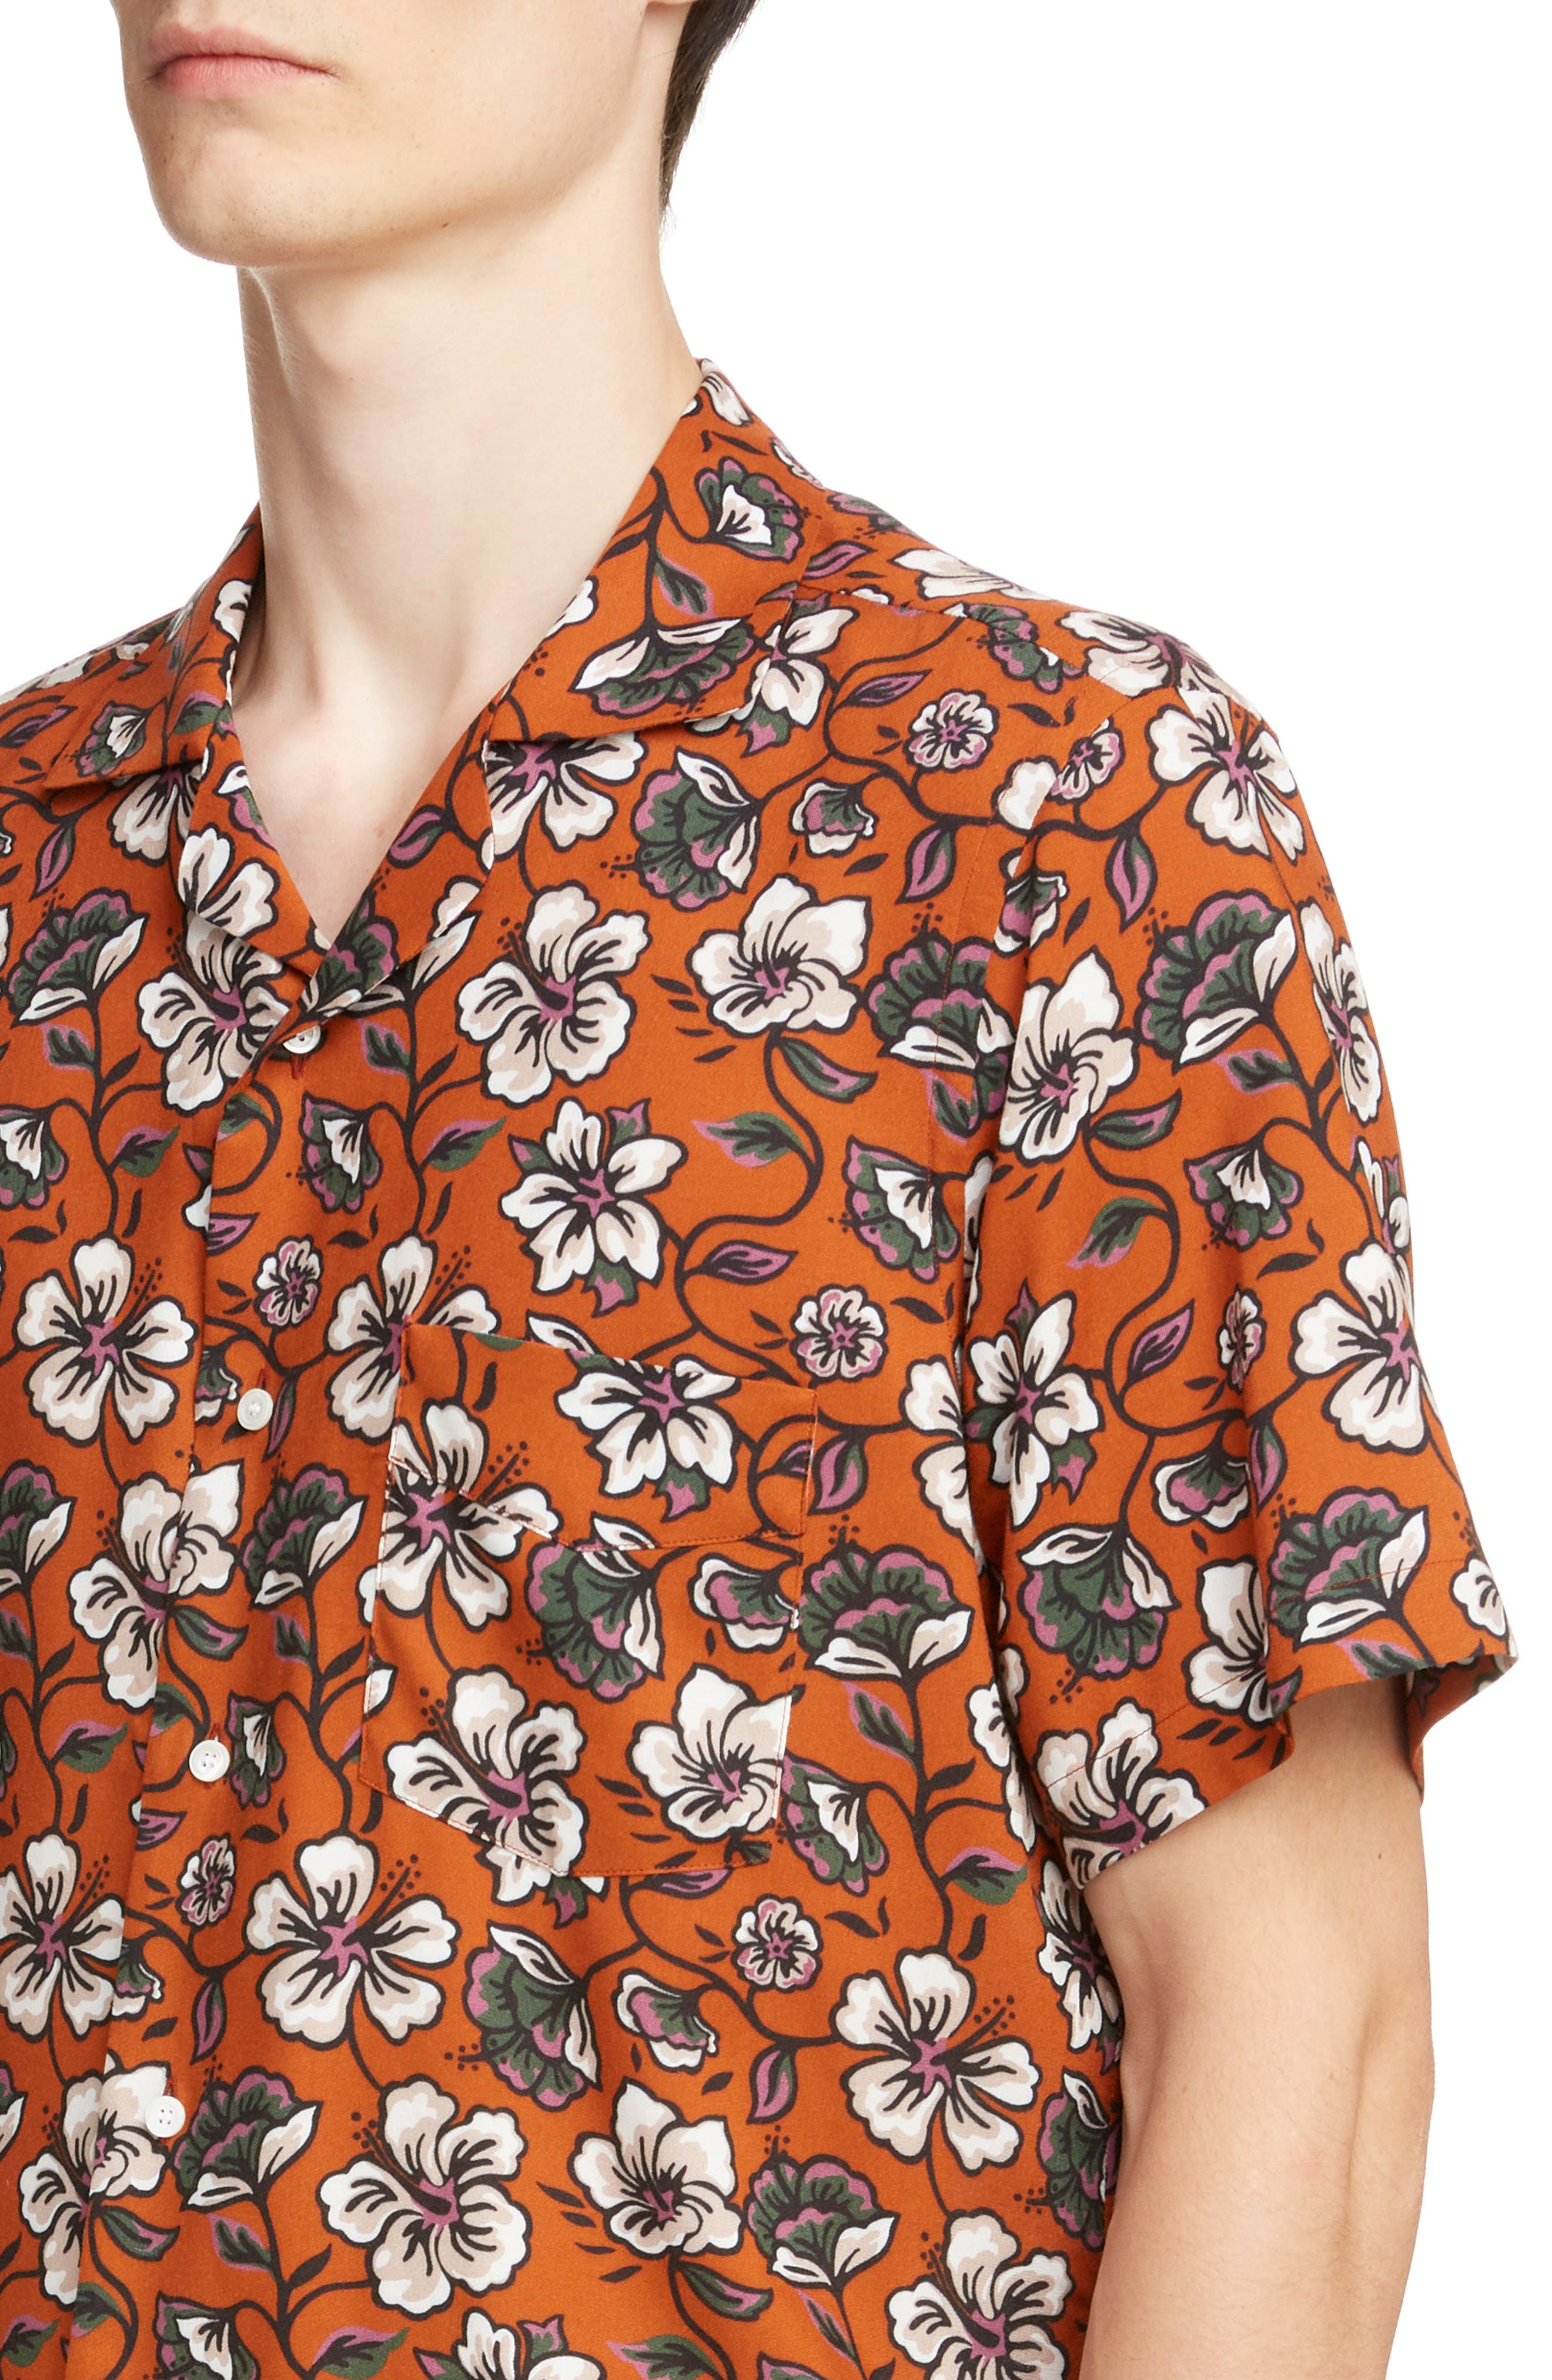 LOEWE, Floral Print Camp Shirt, Alternate thumbnail 2, color, 2103-WHITE/ BROWN